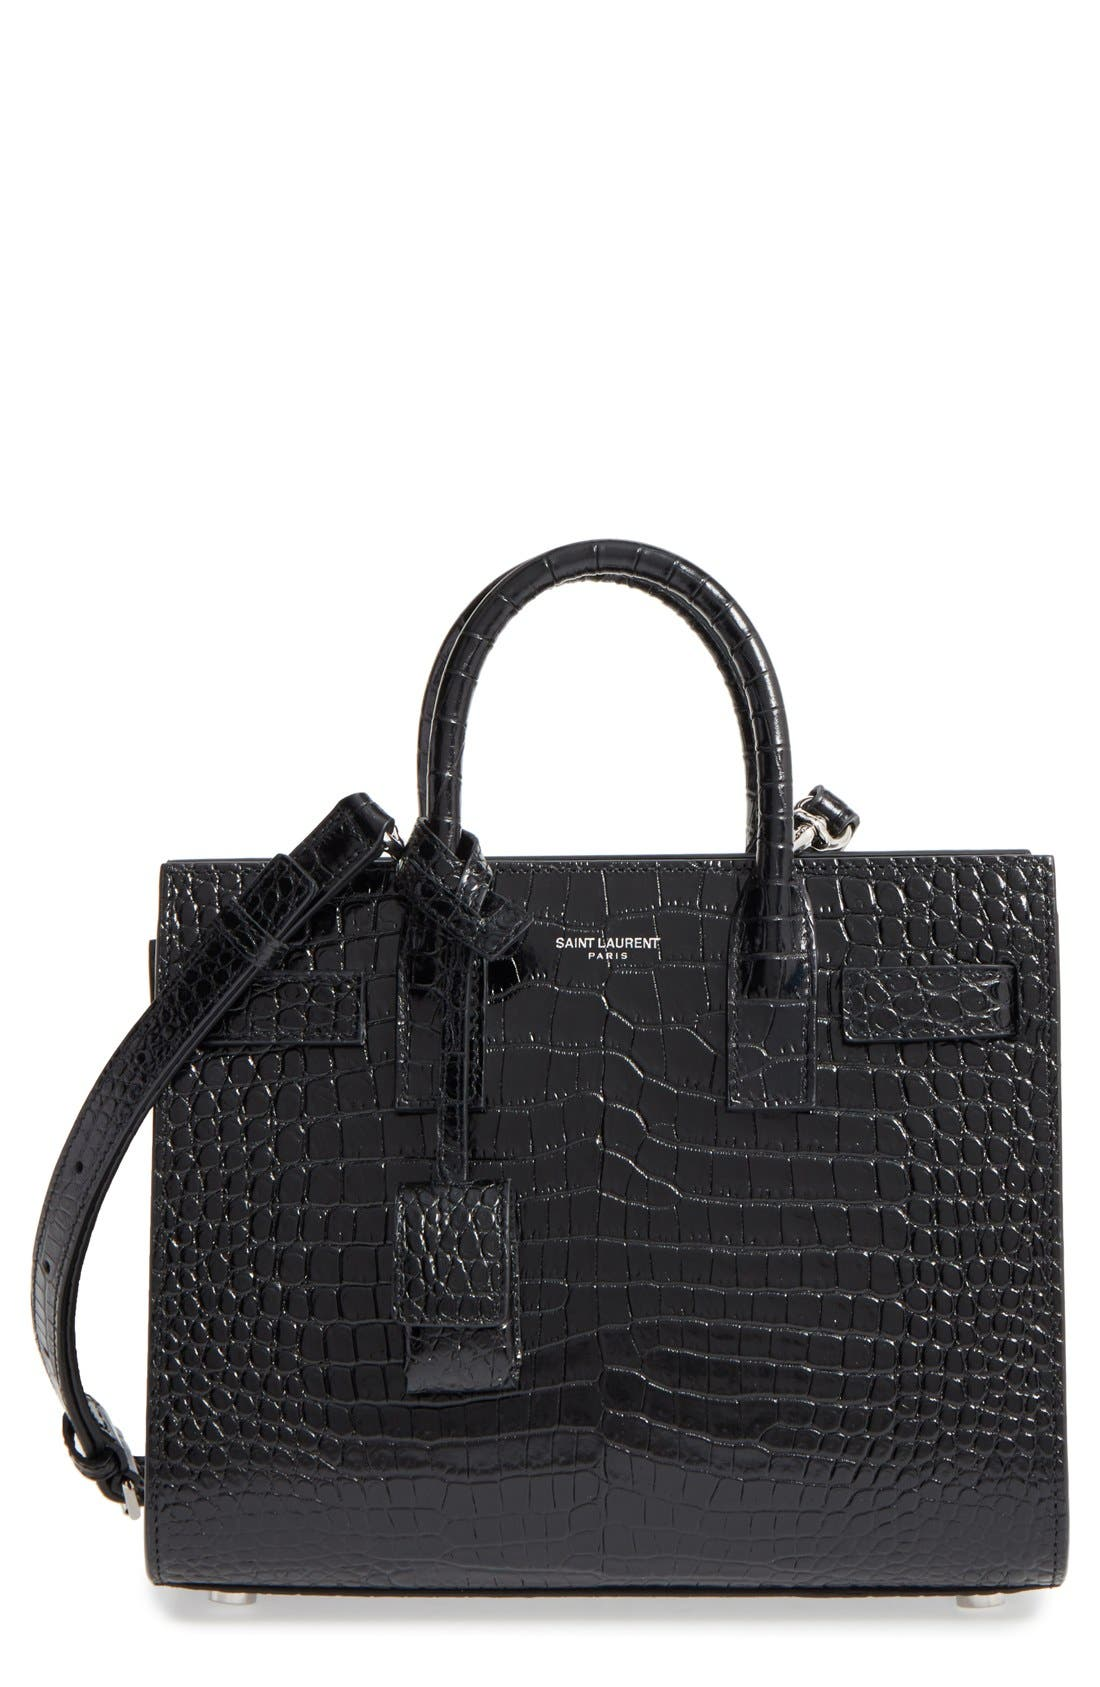 Main Image - Saint Laurent Nano Sac de Jour Croc Embossed Leather Tote